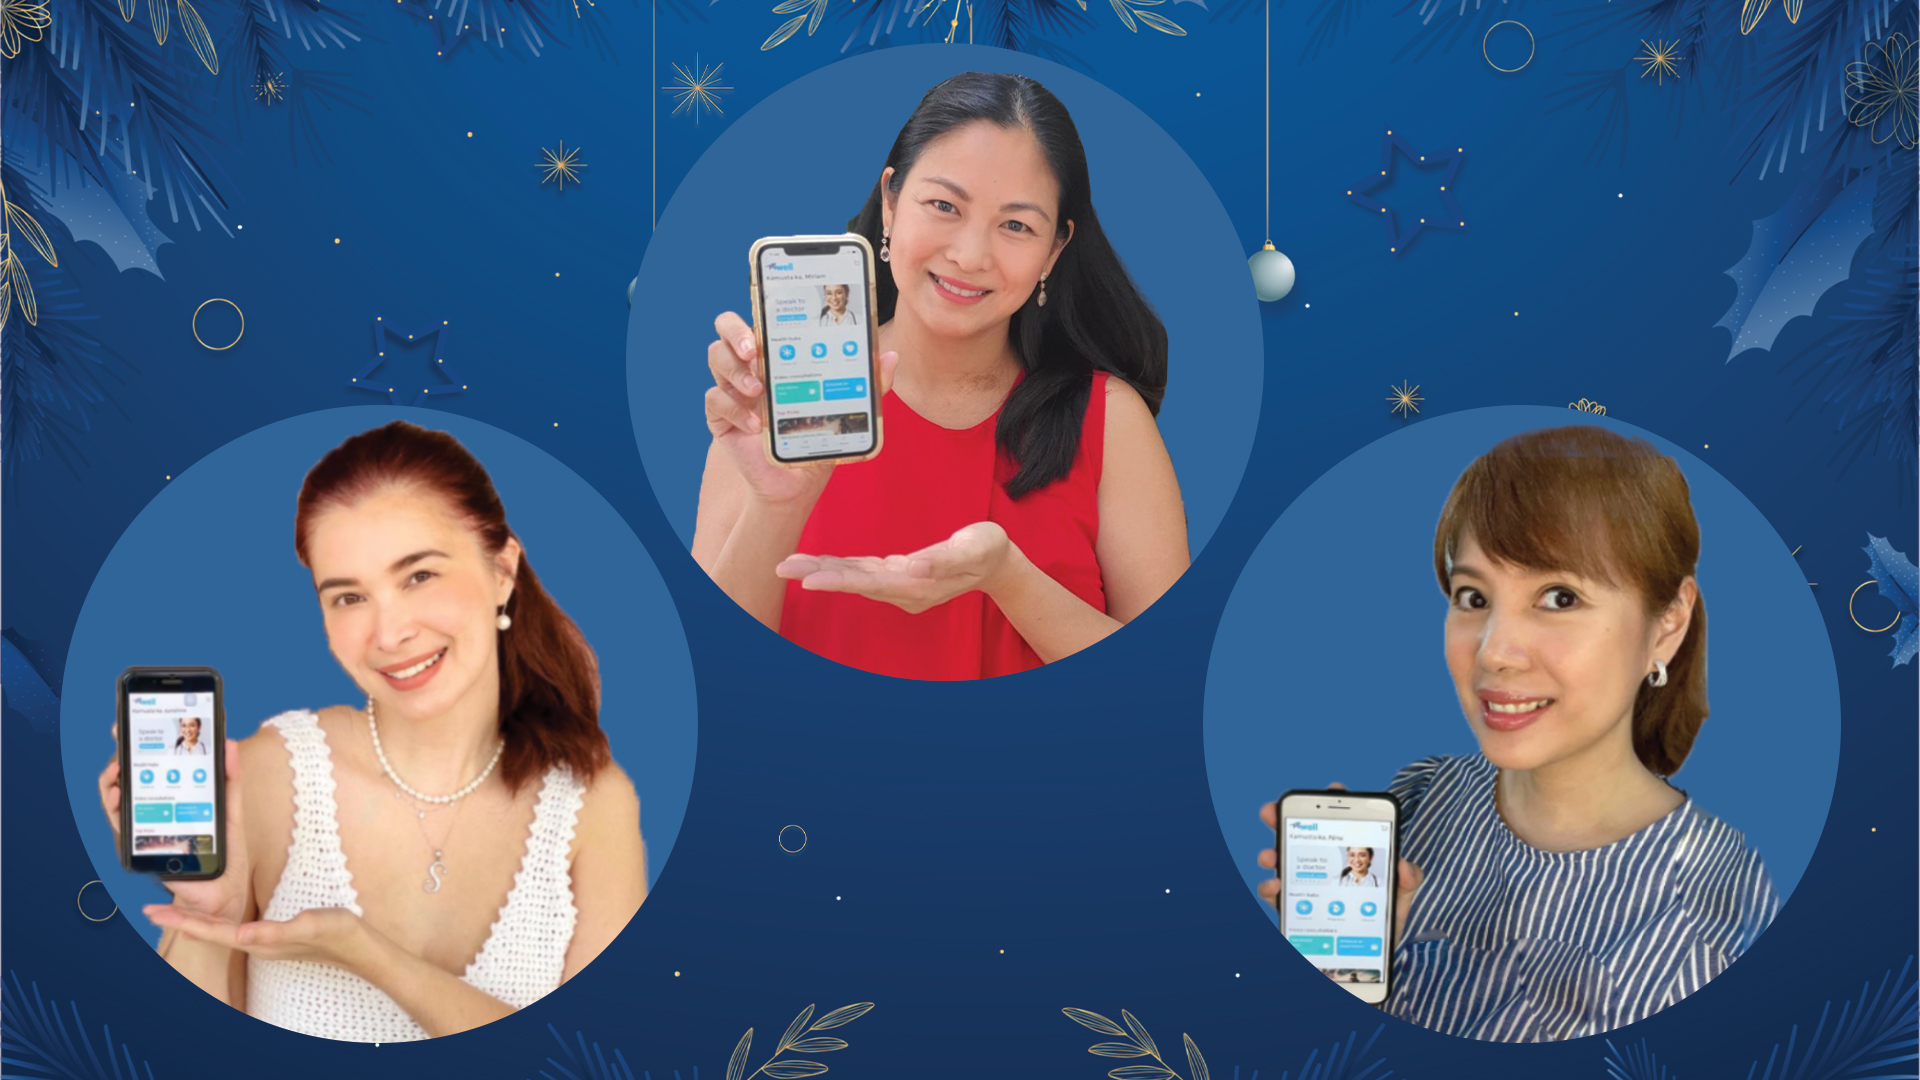 mWell launches Gift Of mWellness for Christmas